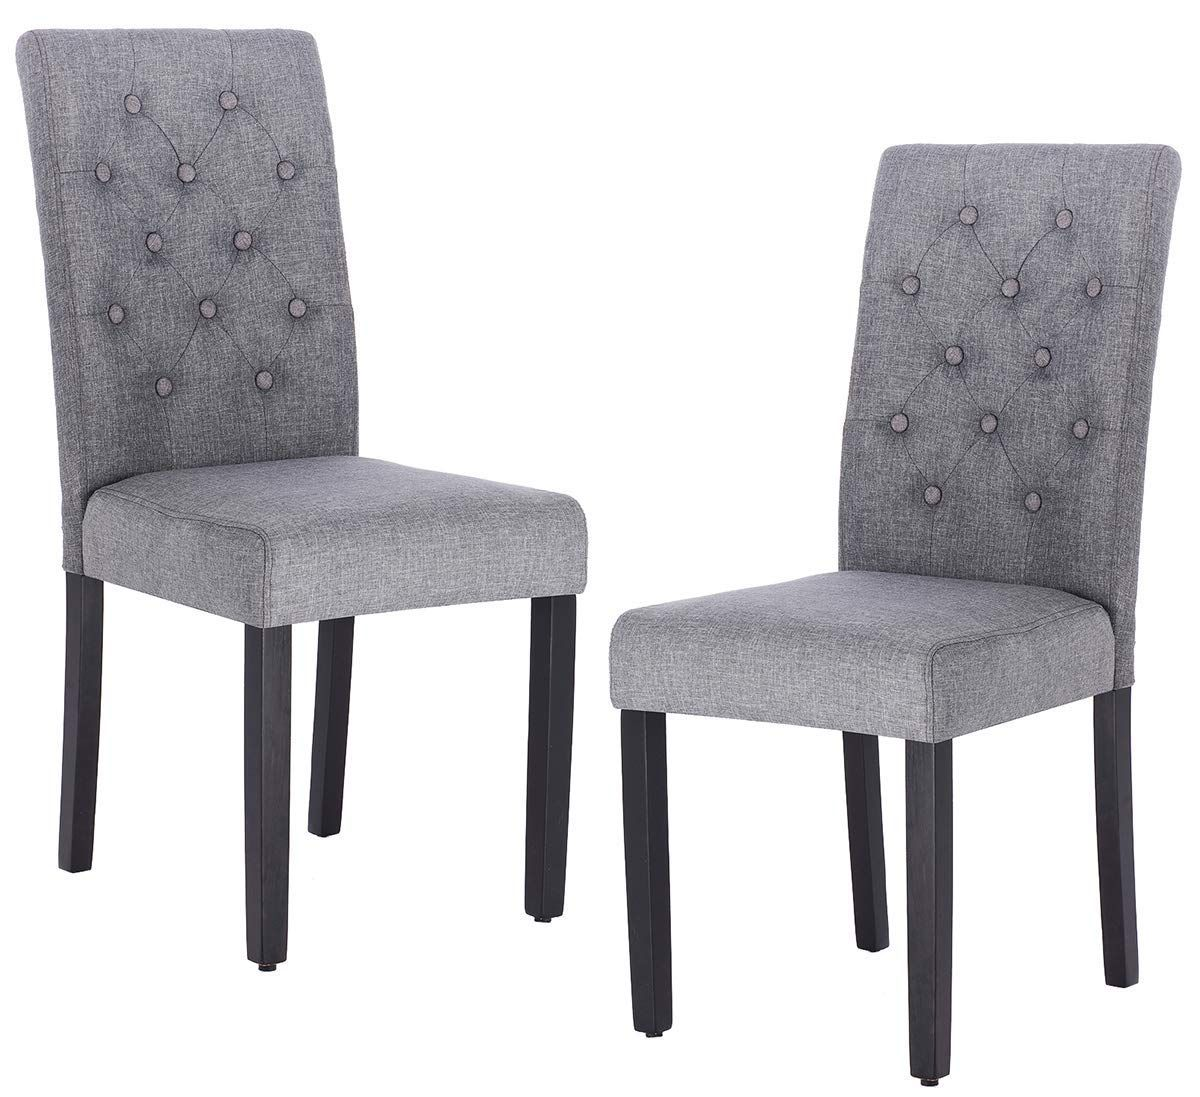 Best Amazon Com Set Of 2 Modern Tufted Padded Parsons Chair 640 x 480